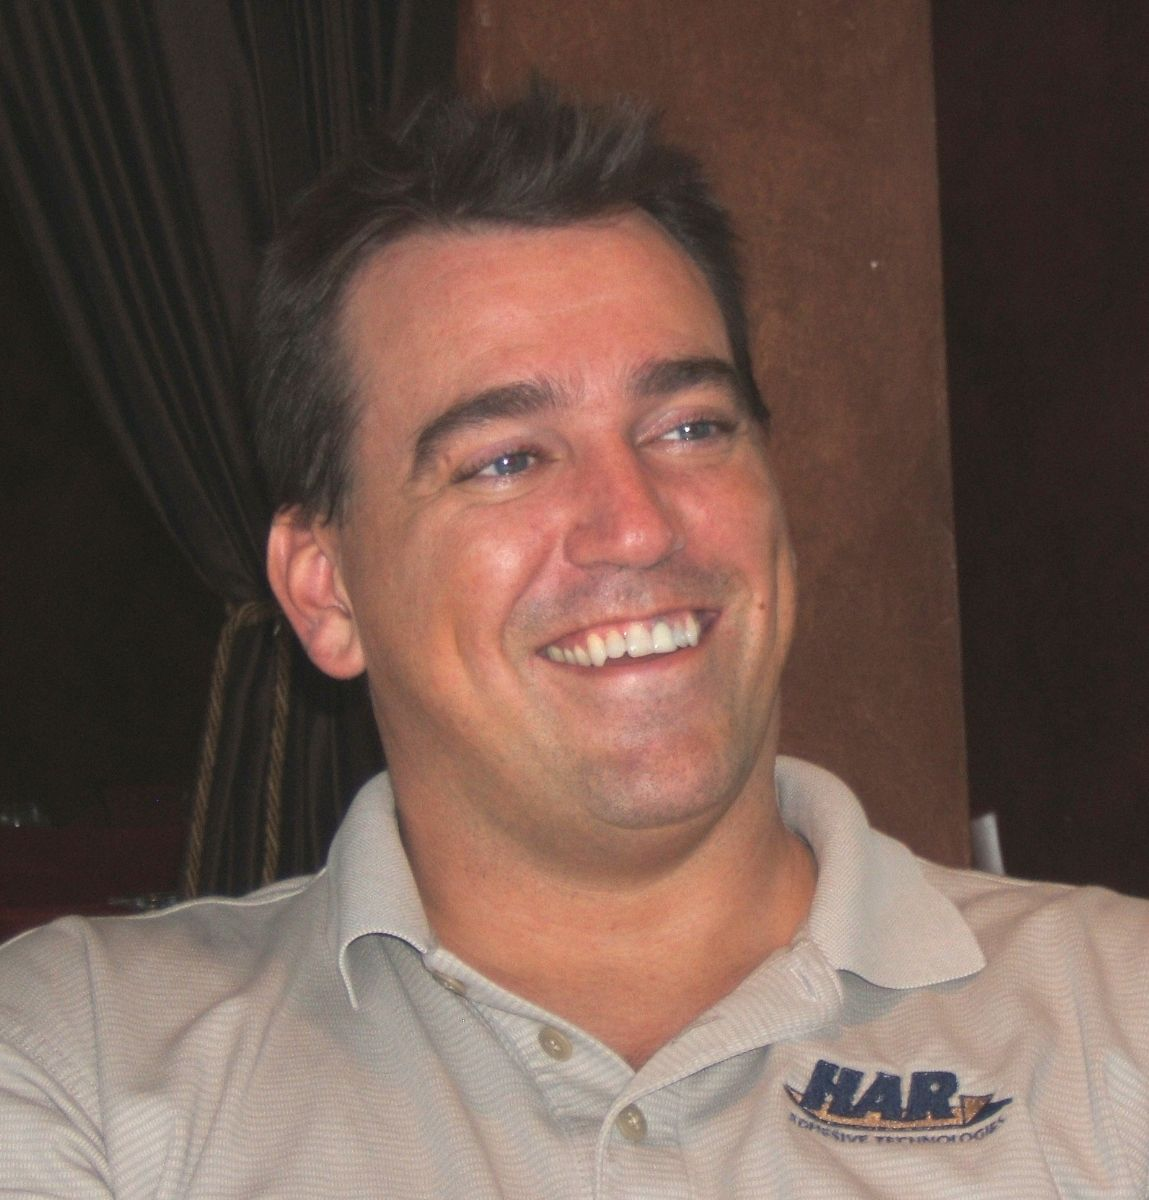 Gary Hajek - Technical Sales Representative from HAR Adhesive Technologies